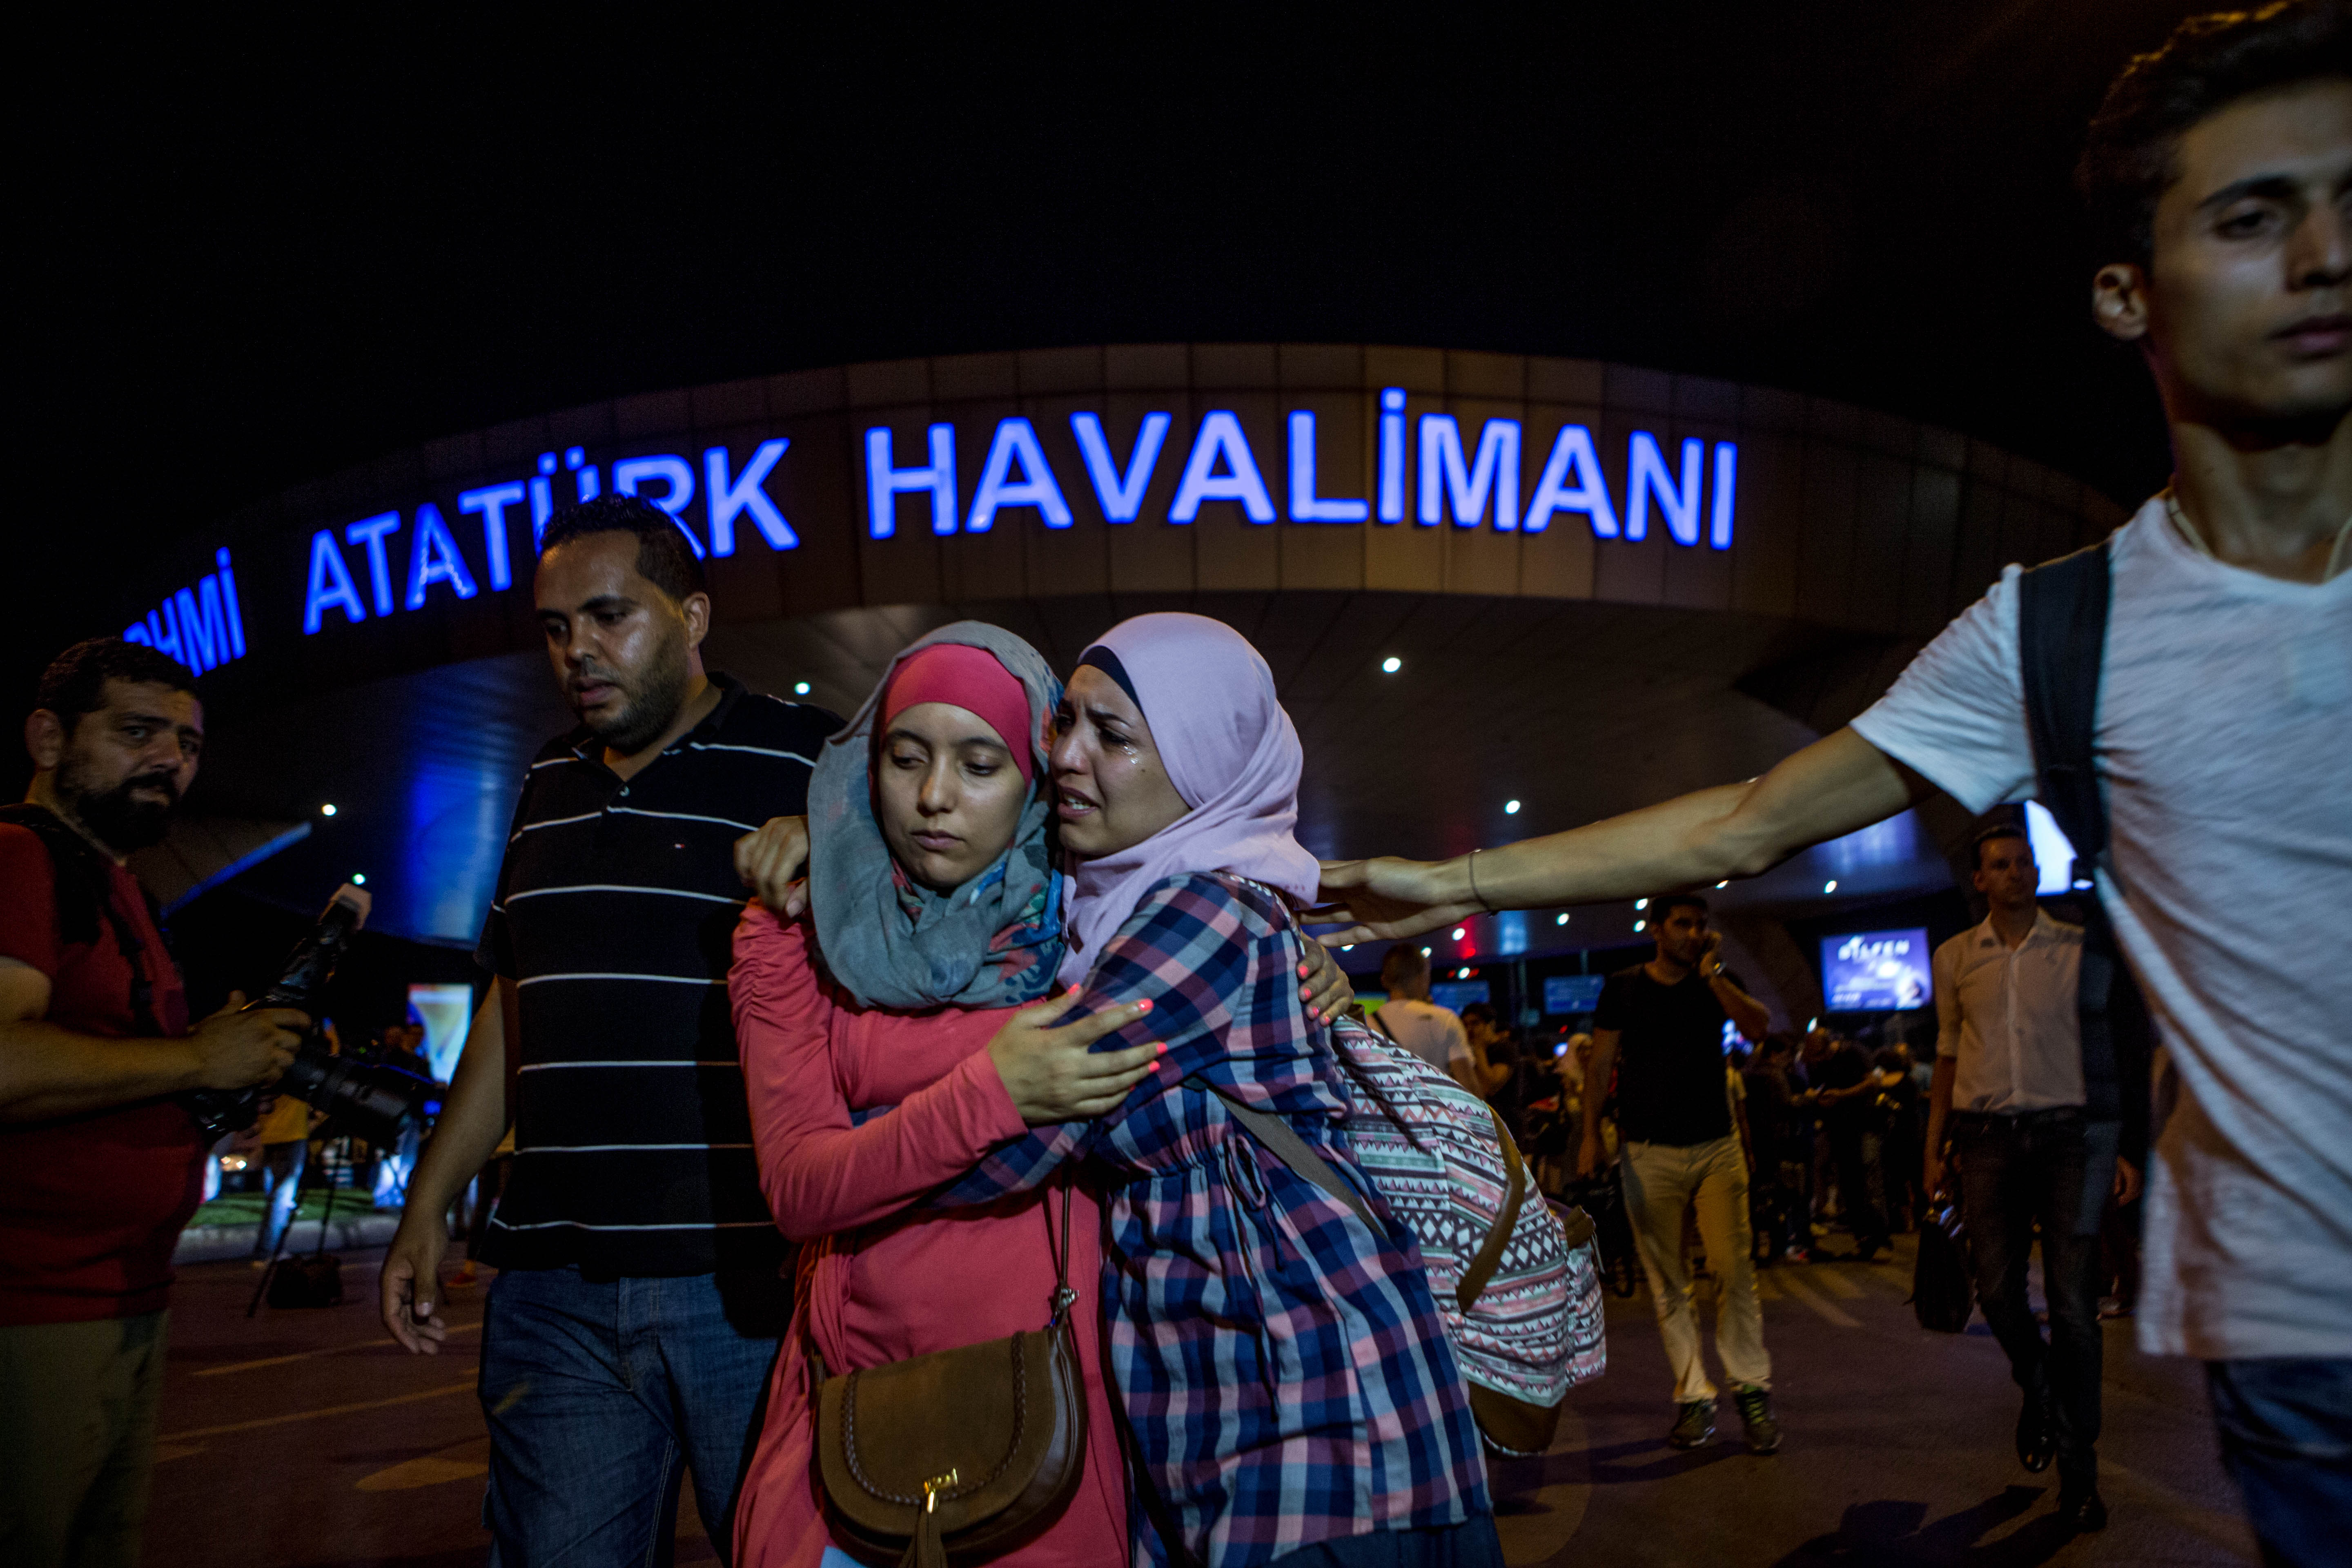 Passengers leave Istanbul Ataturk Airport, Turkey's largest airport, after a suicide-bomb attack in the early hours of in Istanbul on June 29, 2016.